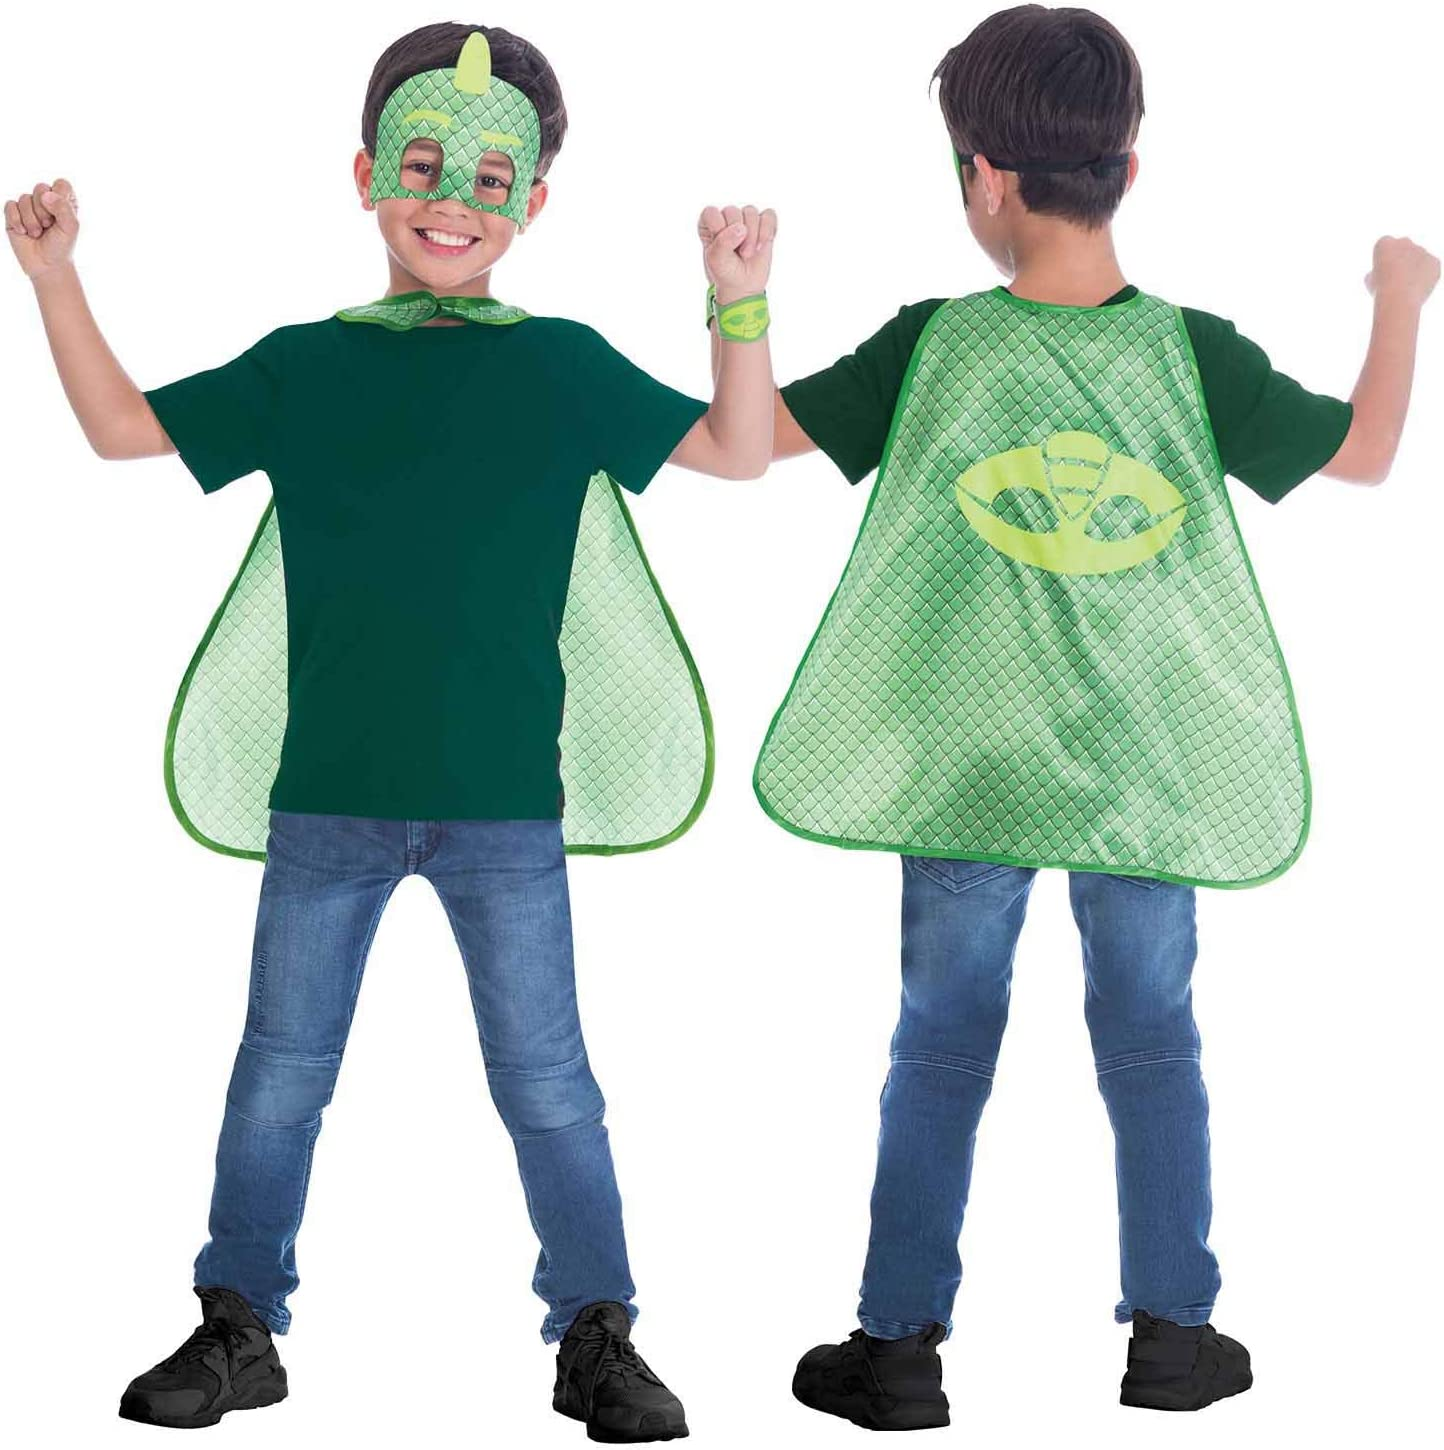 amscan- Green Cape Costume Set with Masks Design, 4-8 Years-1 Pc ...